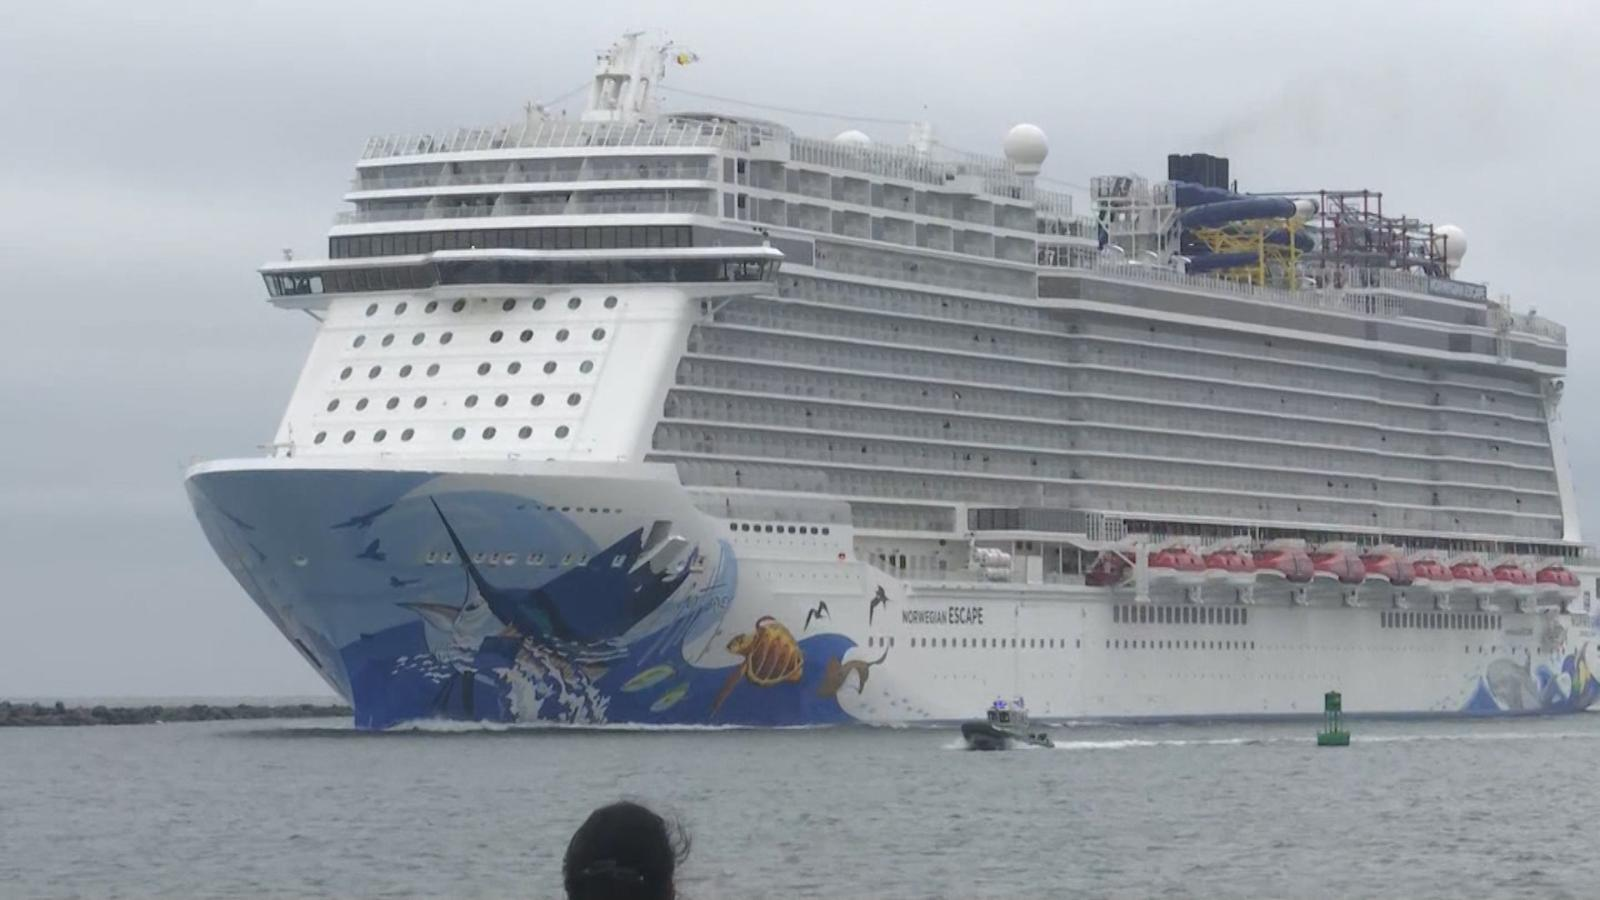 hight resolution of several passengers hurt as cruise ship tilts when hit by sudden 115 mph gust